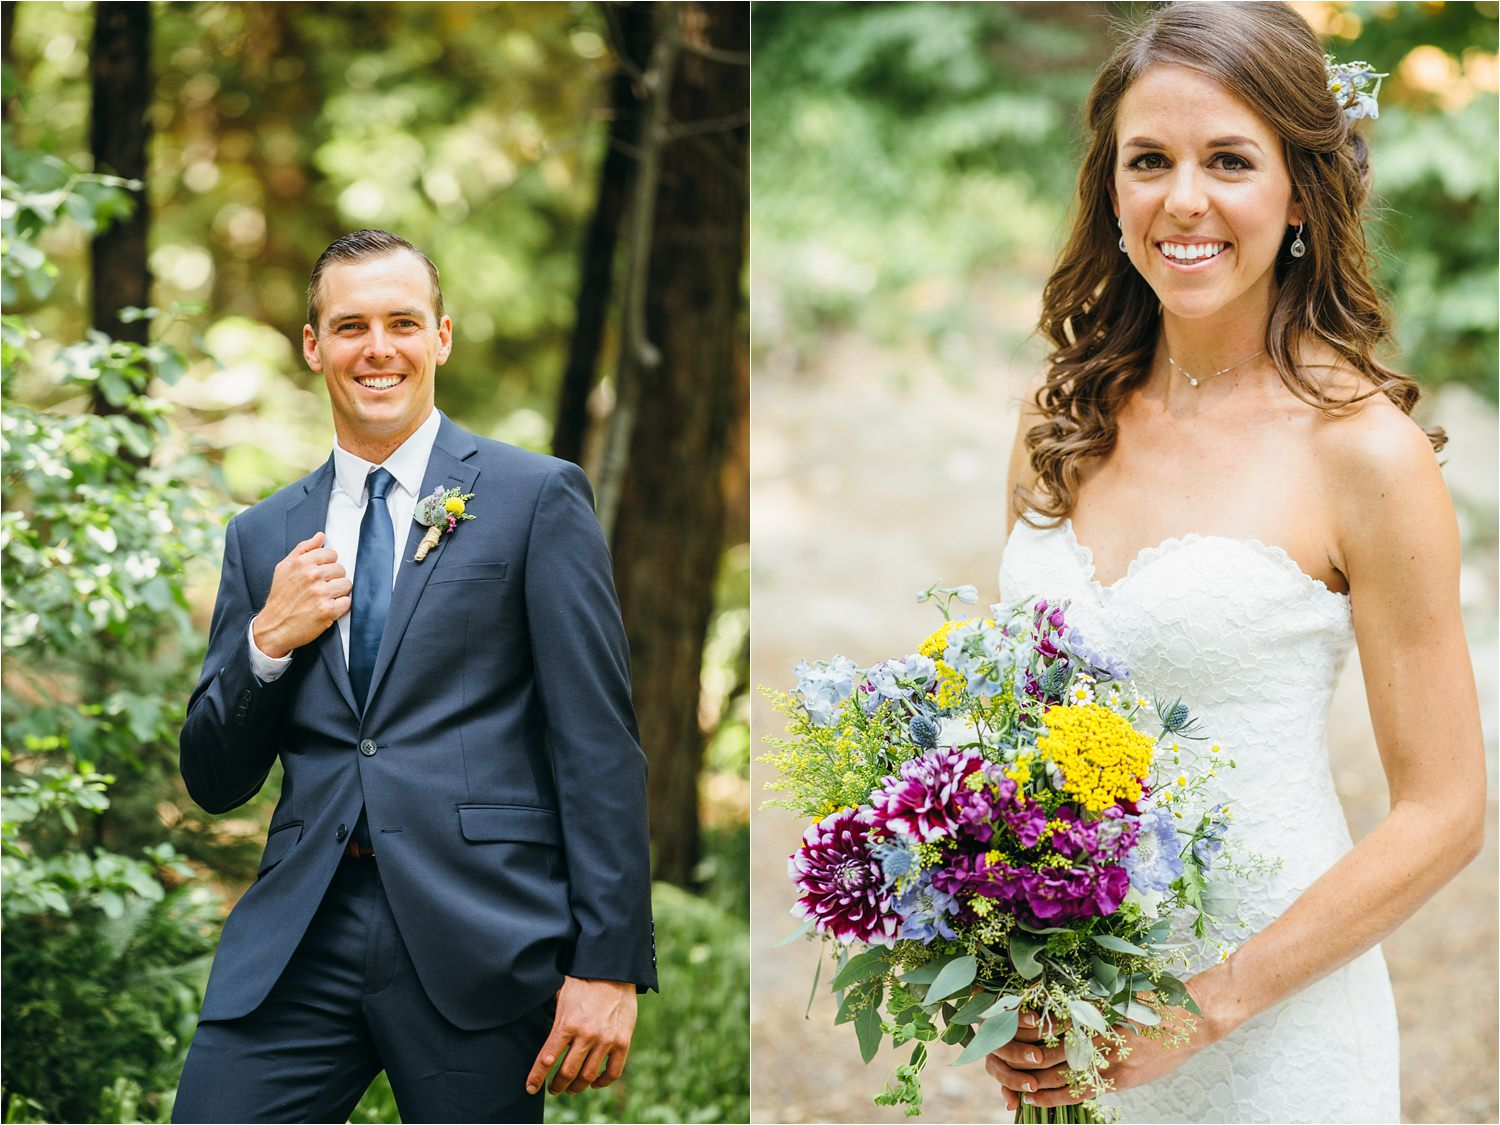 Bride & Groom Photos - Lake Arrowhead Summer Camp Wedding - https://brittneyhannonphotography.com